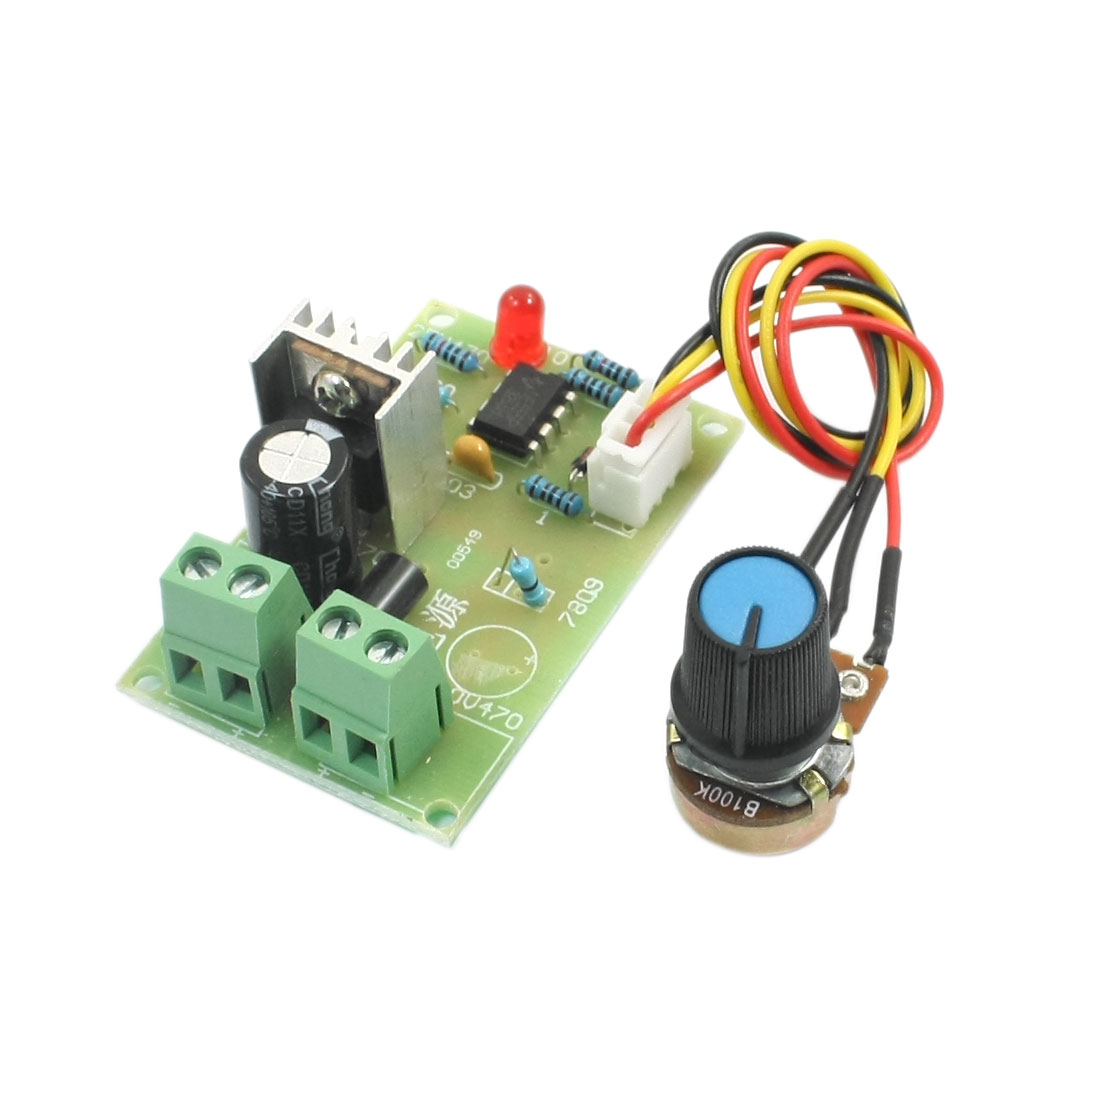 DC 6-16V 100W Pulse Width Modulation Rotary Adjustable B100K Potentiometer Knob PWM Motor Speed Controller Switch Governor Module 8""